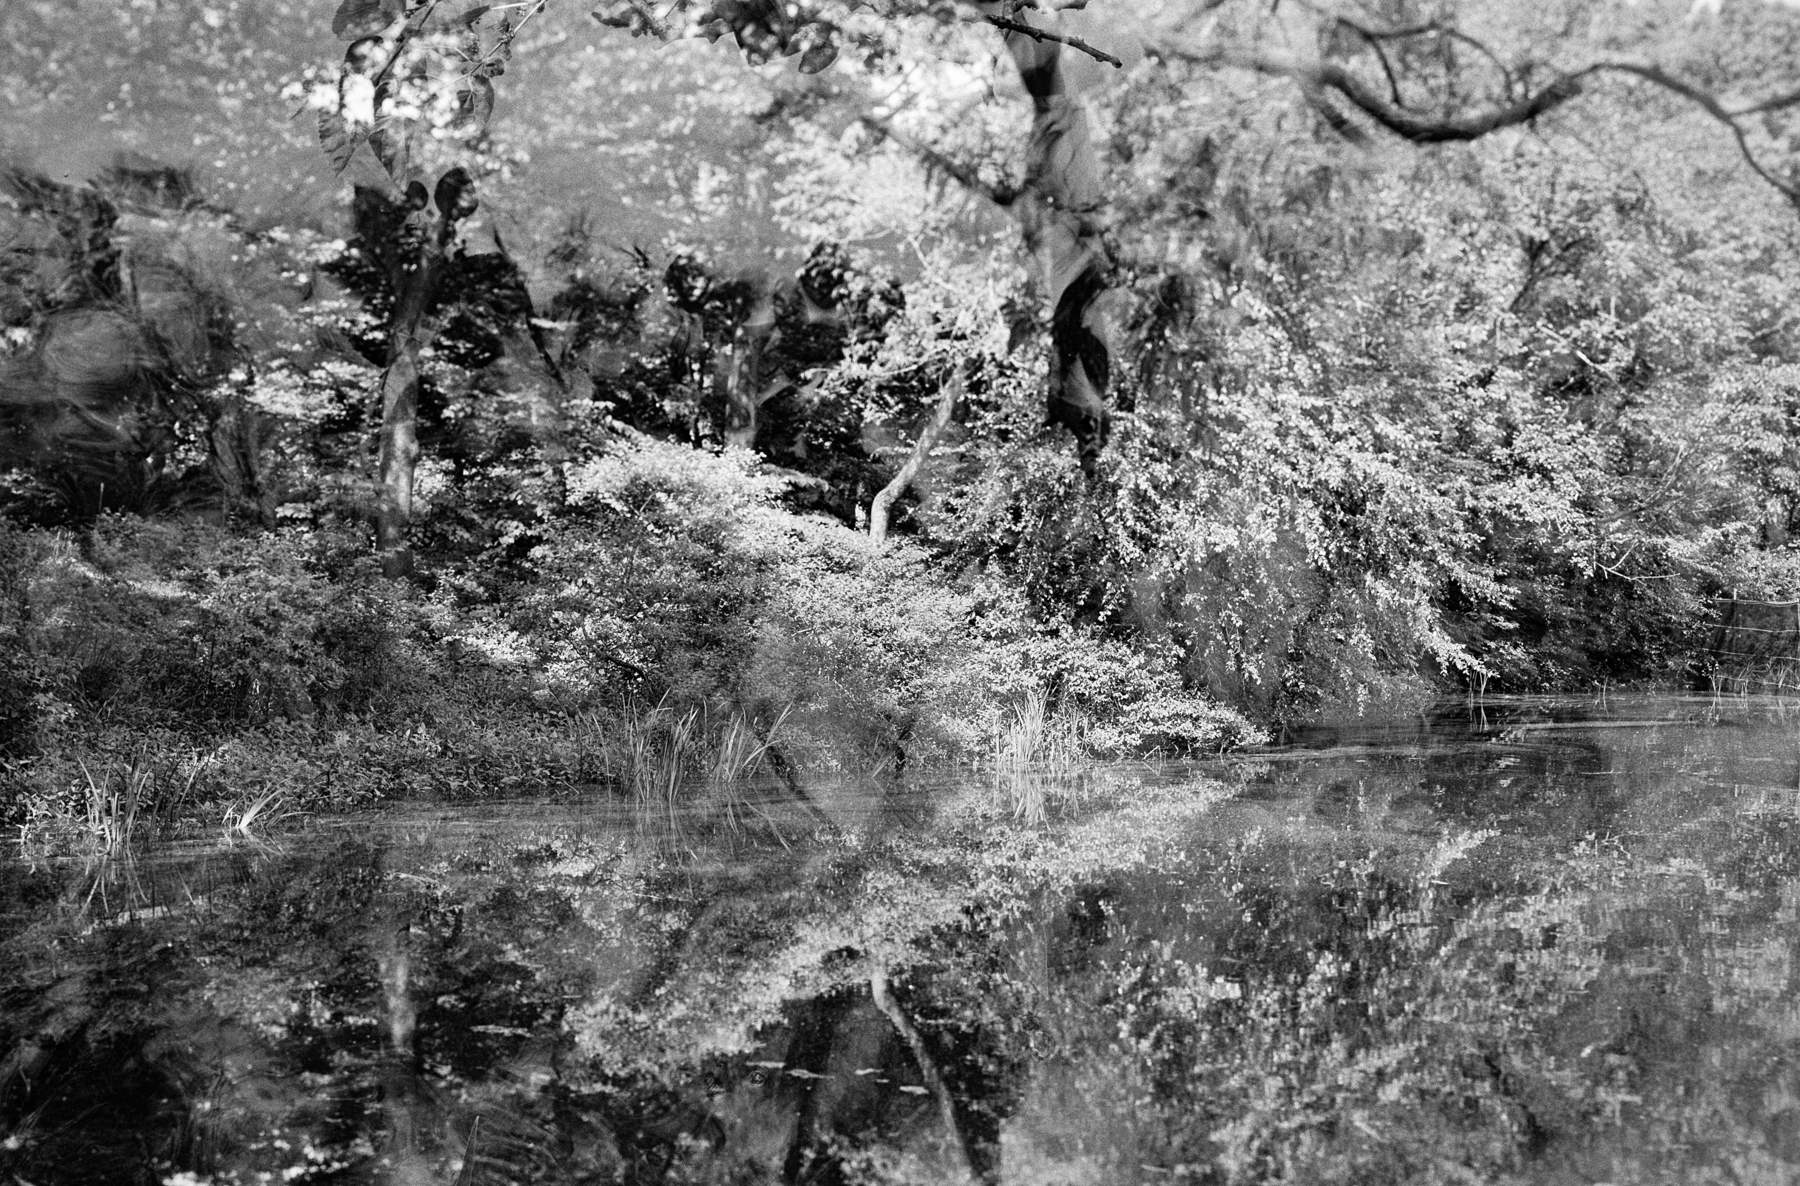 I quite like this unexpected double exposure, a result of my forgetting to wind the film on after a previous exposure.  Sinar Norma, Schneider Kreuznach 150mm f5.6 Symmar and Kodak Tri-X 400